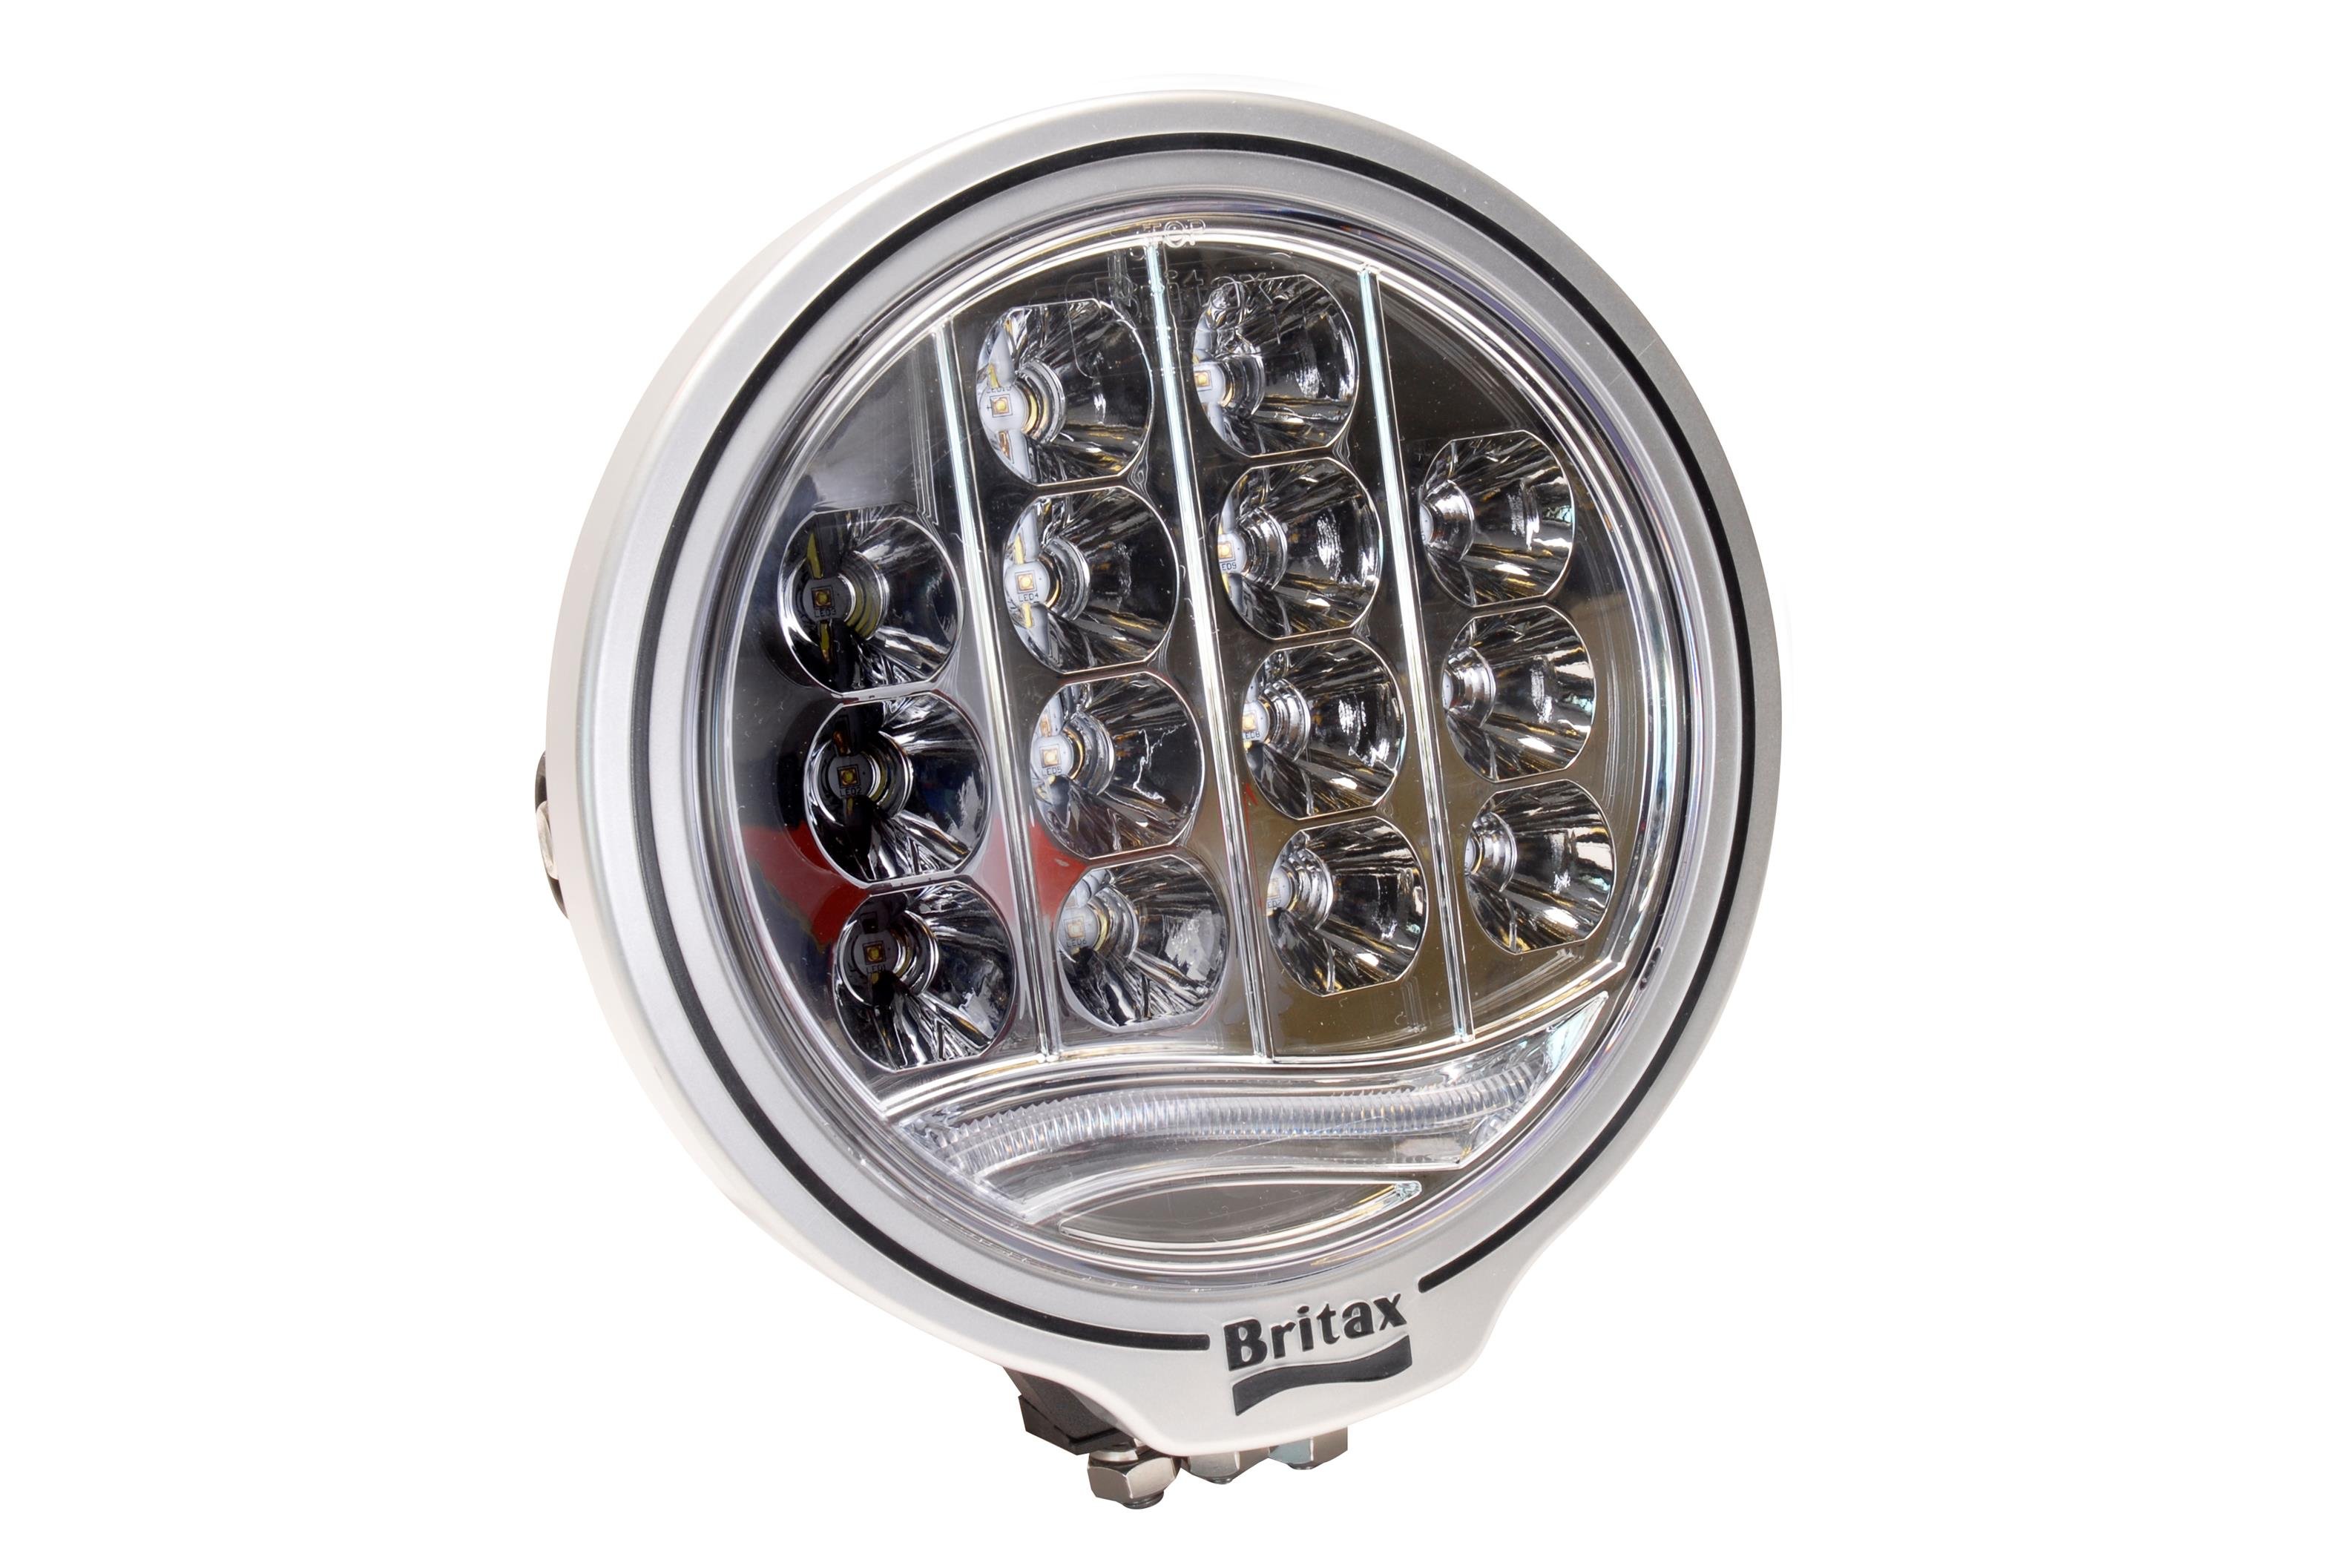 Britax L100 LED Driving Lamp